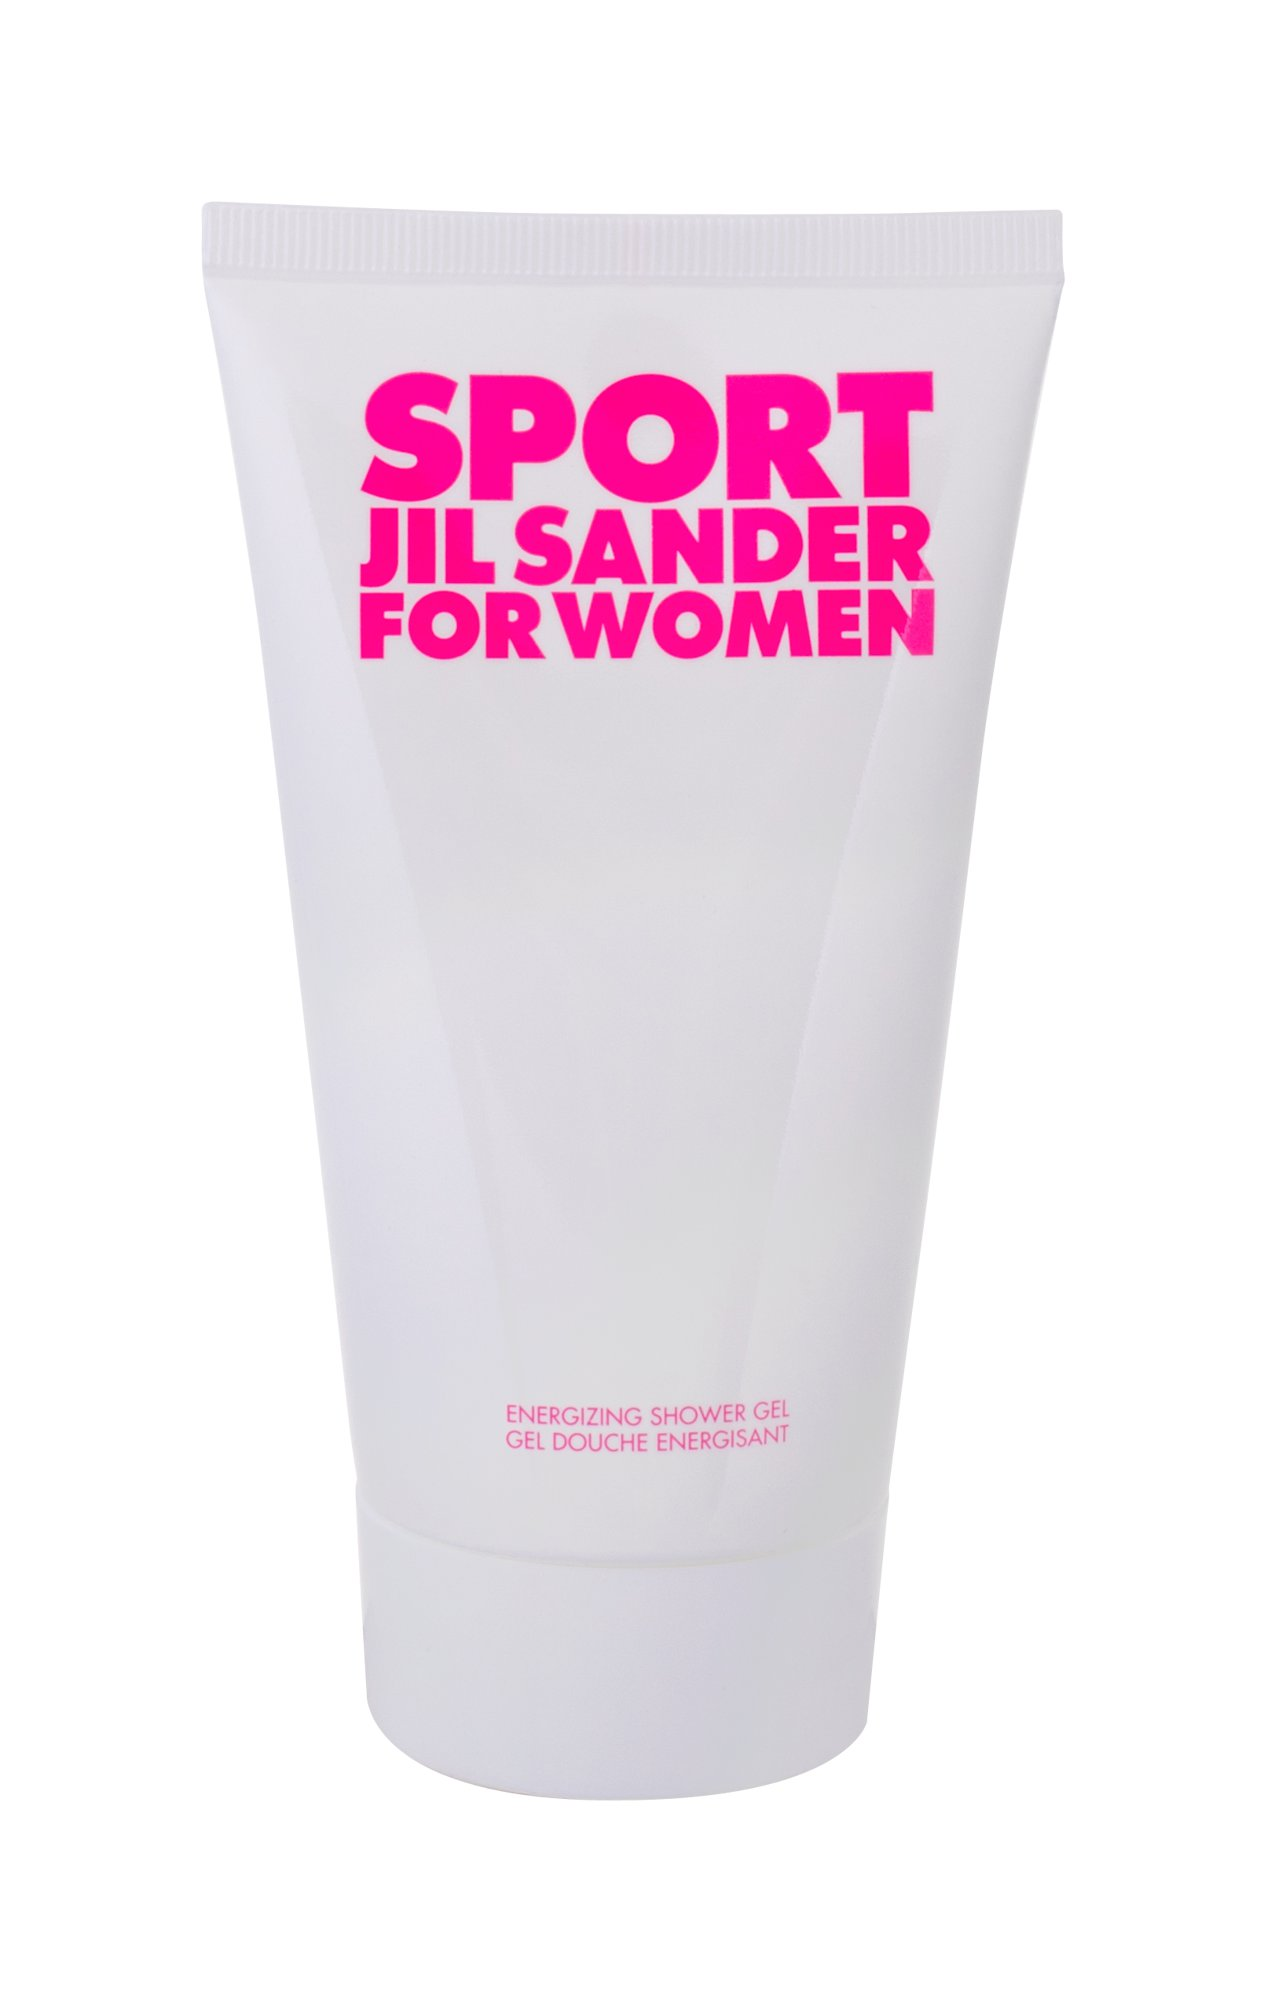 Jil Sander Sport For Women, tusfürdő gél 150ml